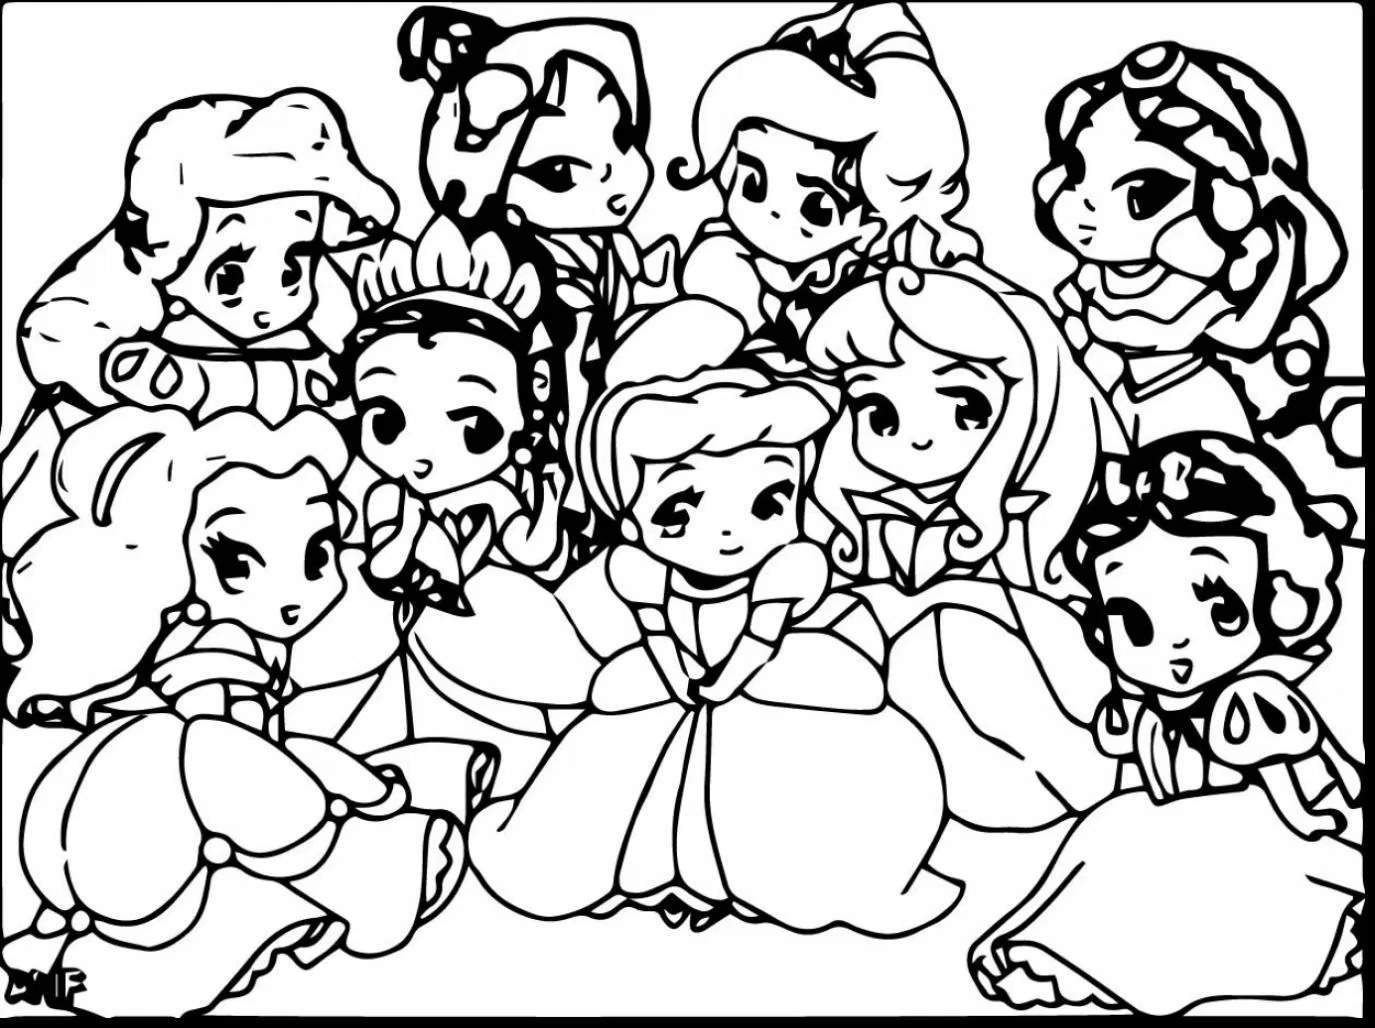 1375x1028 Excellent Baby Disney Princess Coloring Pages With Cute In Of Dak